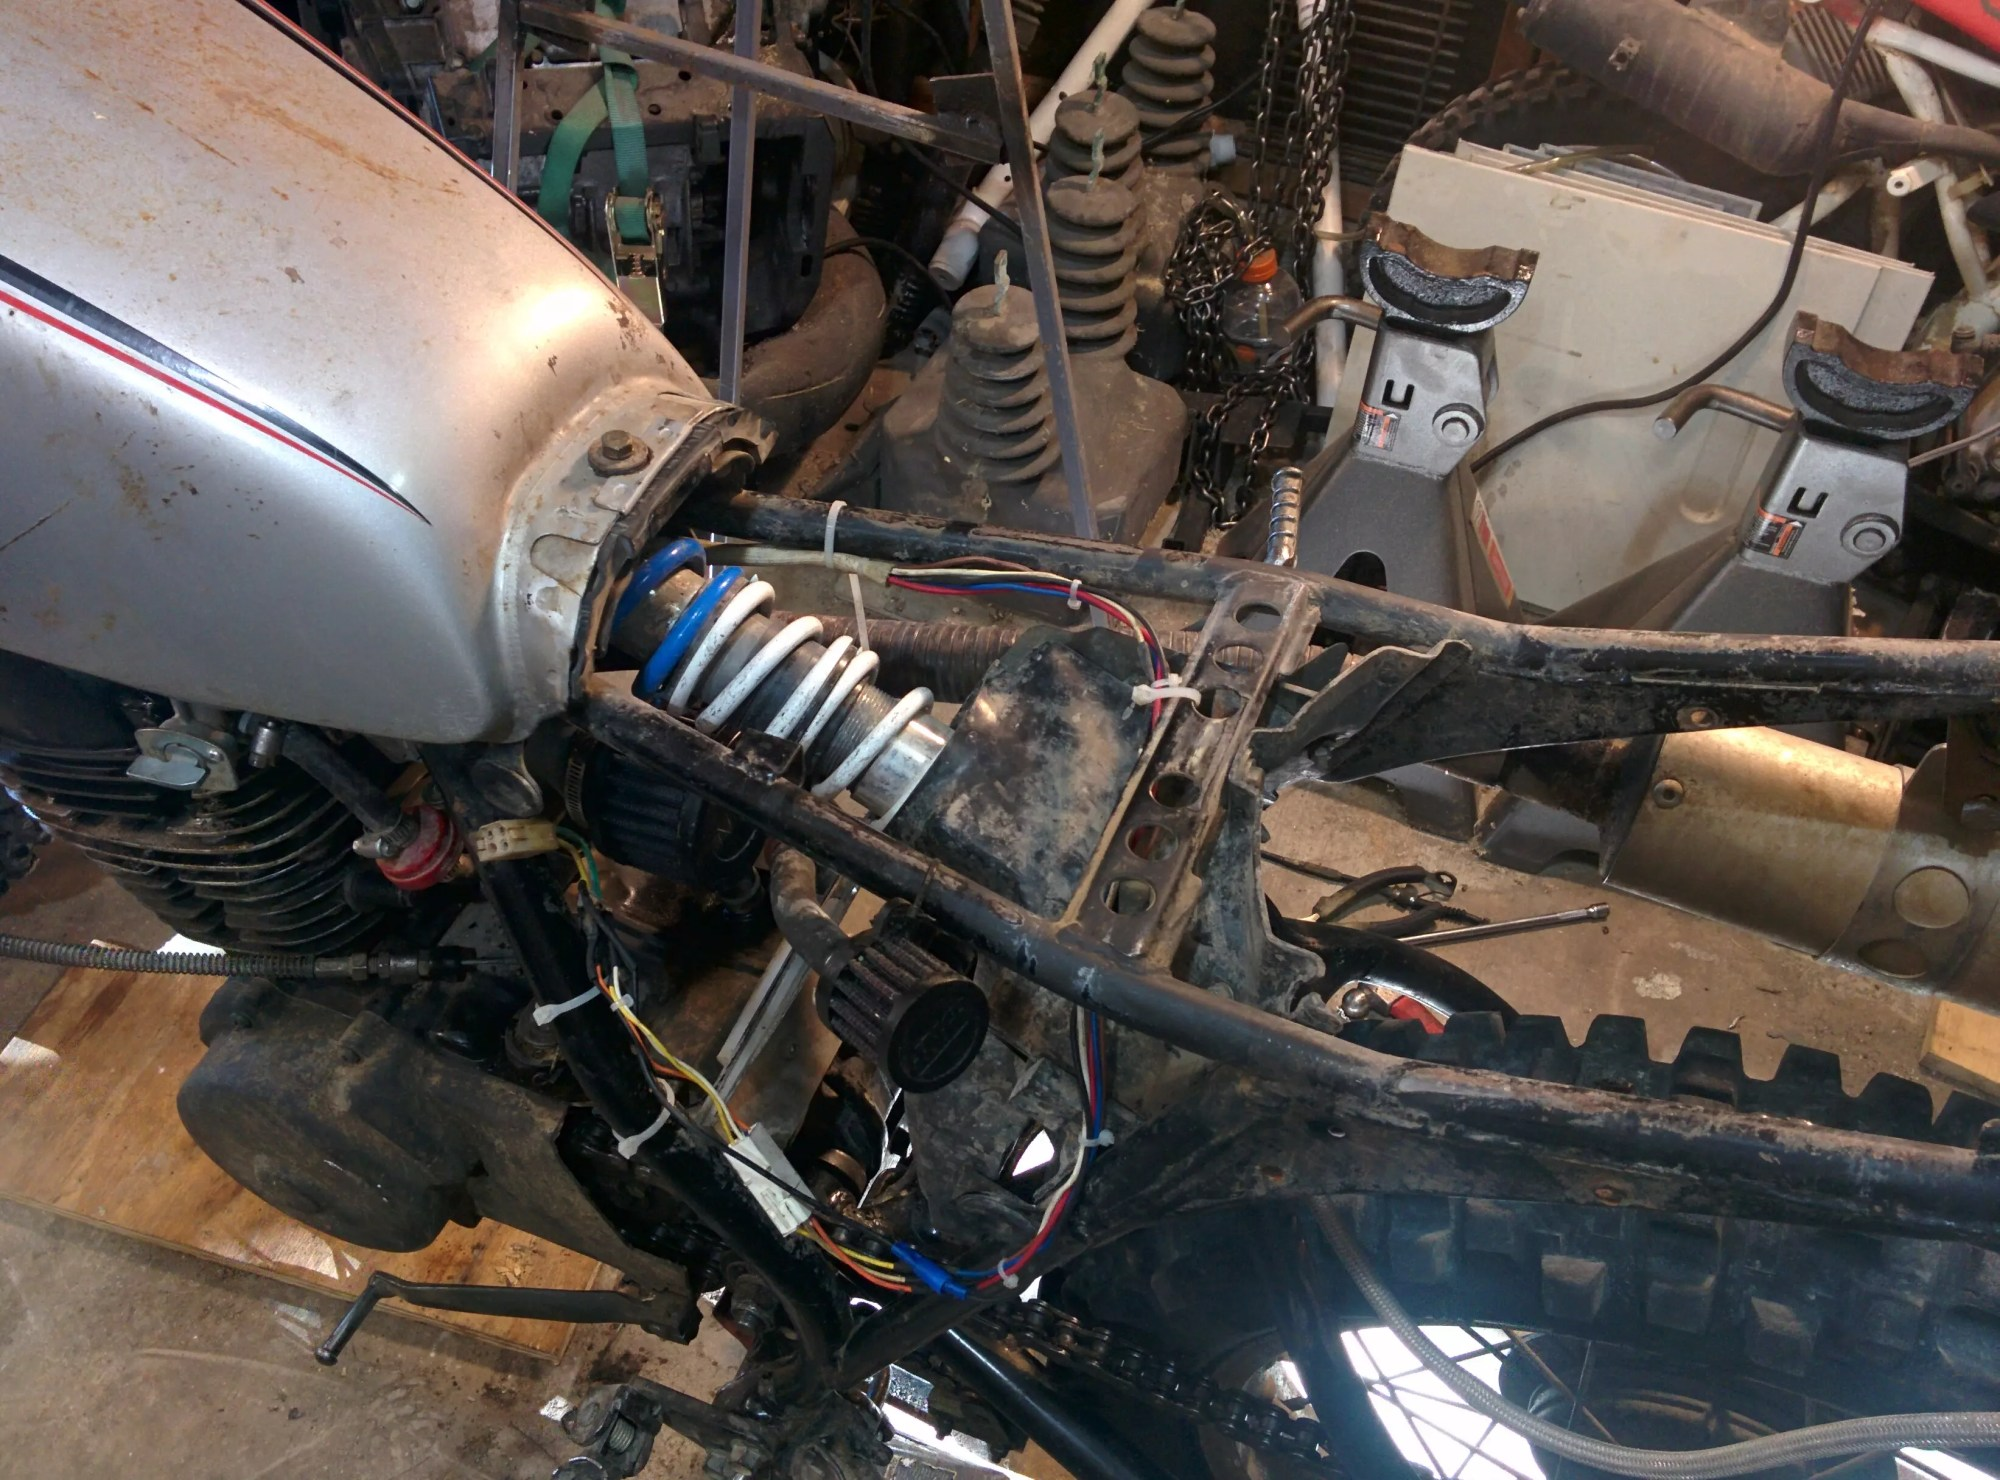 hight resolution of i took the opportunity to route the harness behind the carb and over the shock to try and keep them out of the way